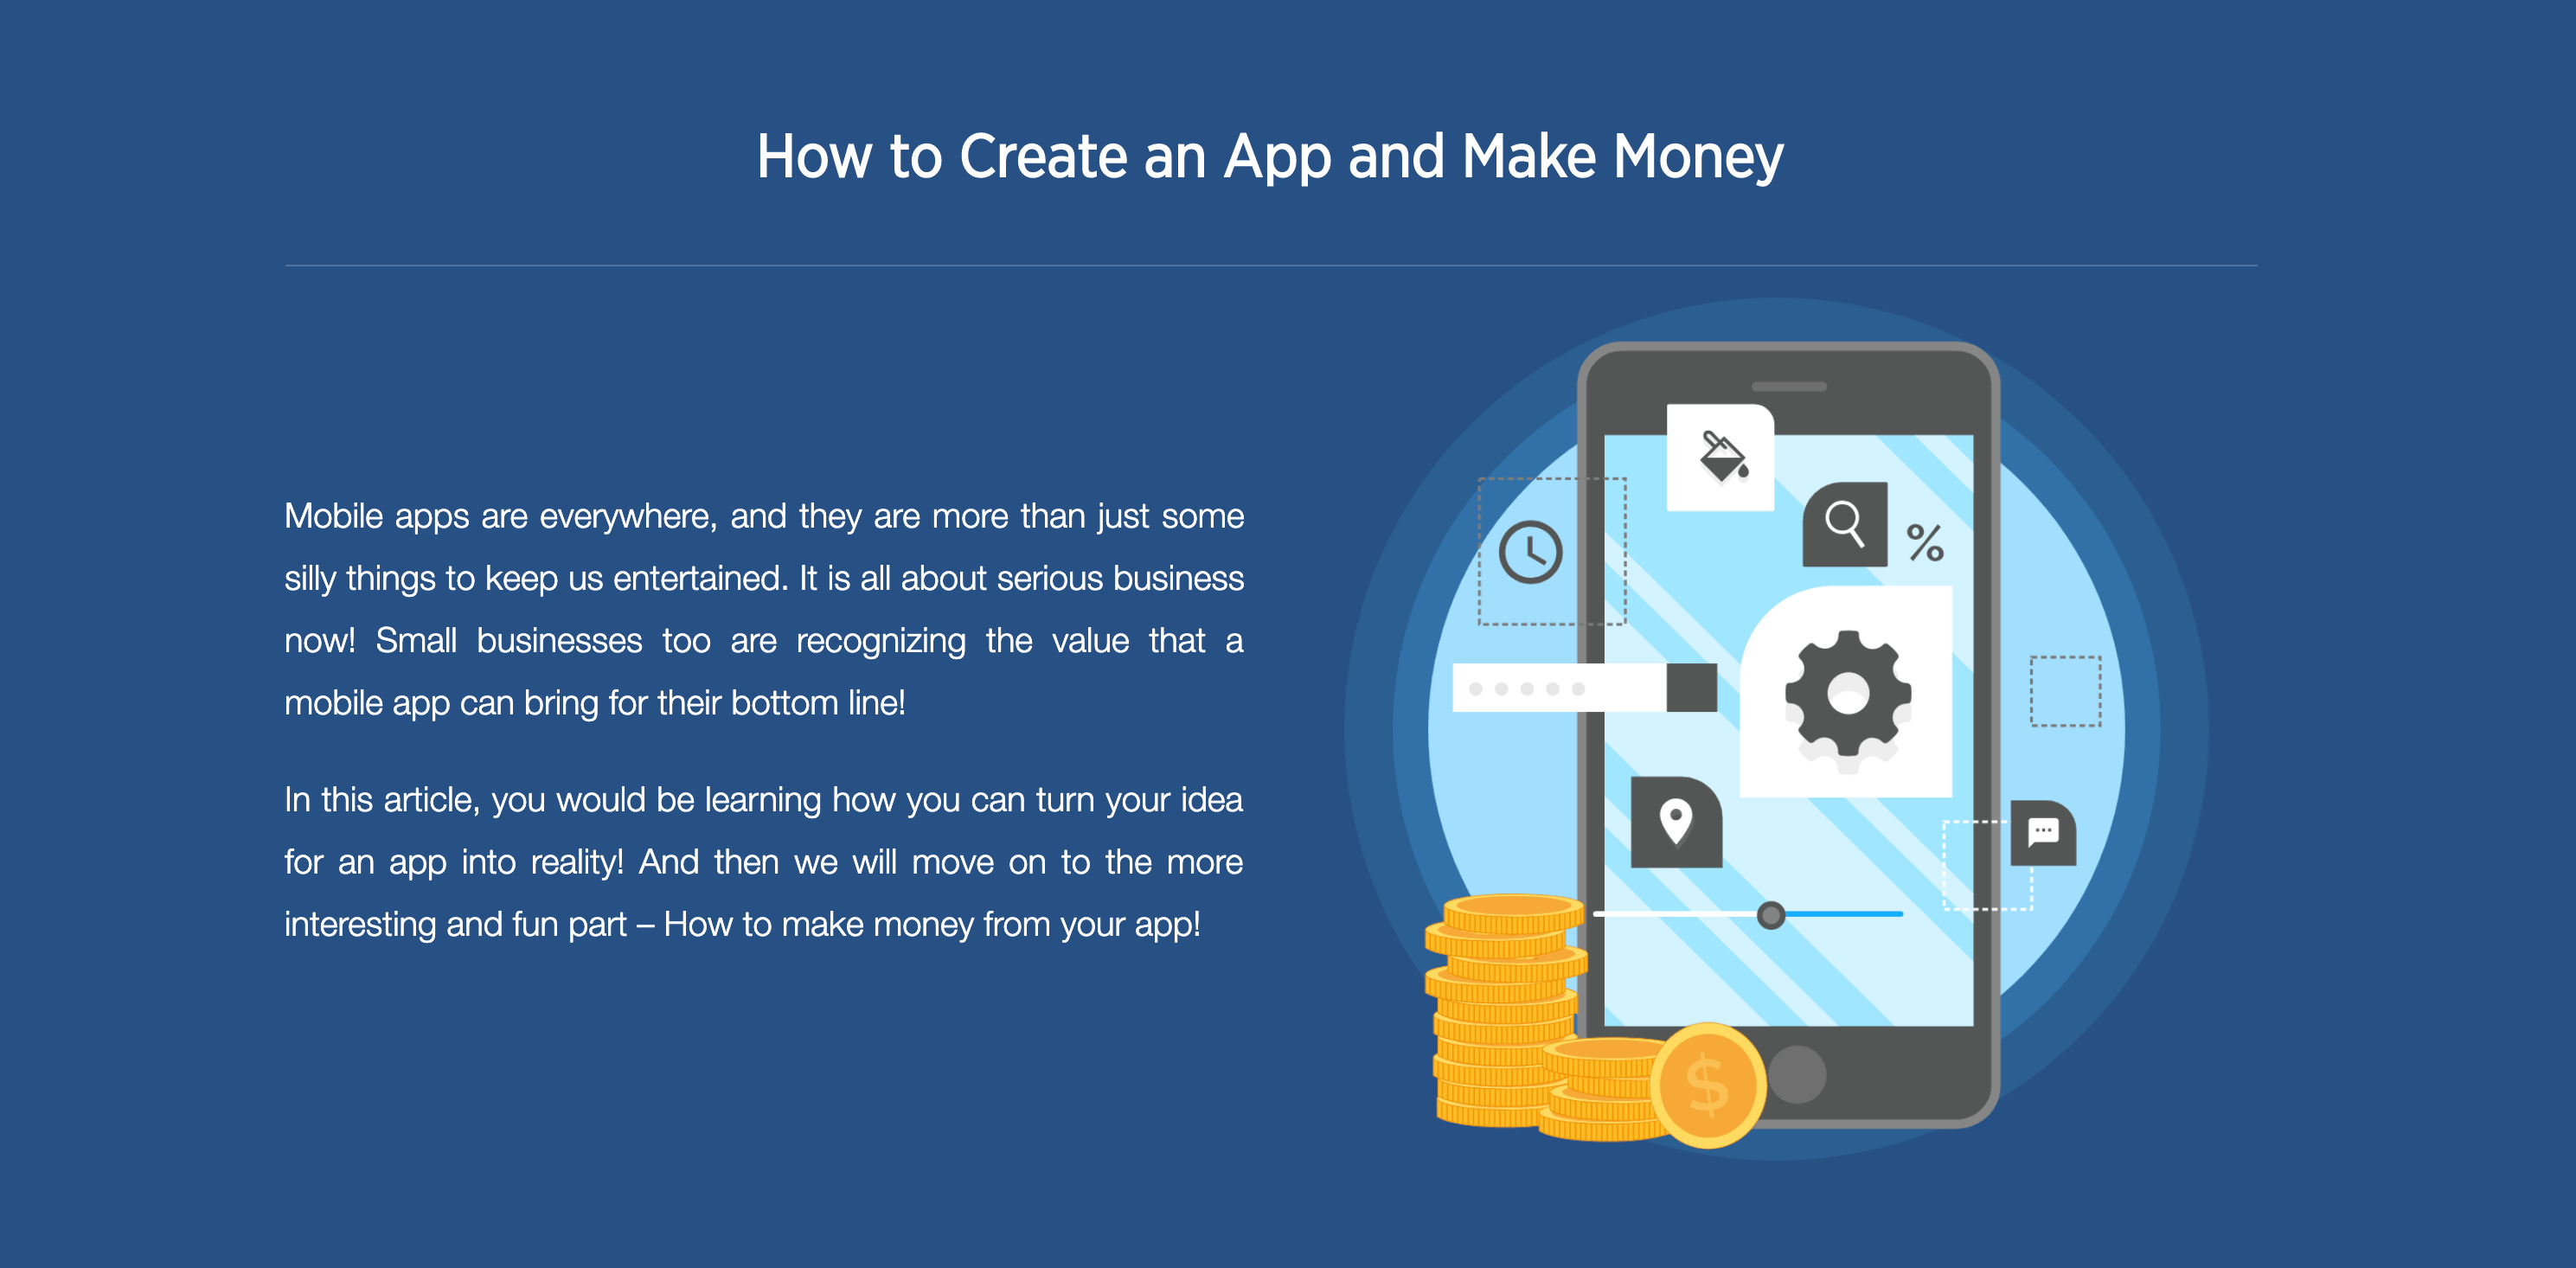 5 something an app for making easy money